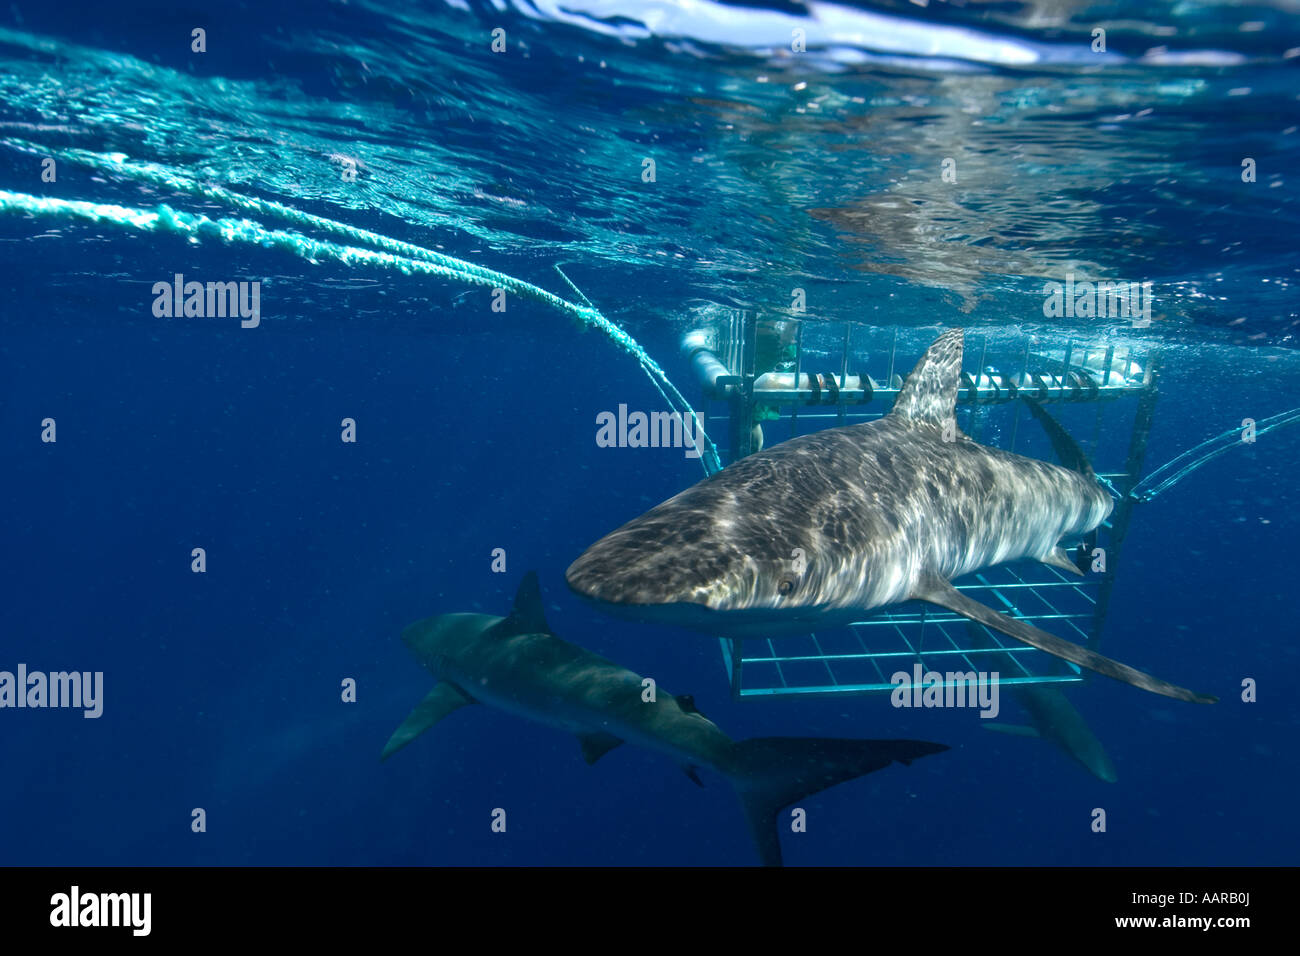 Thrill seekers experience cage diving with Galapagos sharks Carcharhinus galapagensis North shore Oahu Hawaii USA Stock Photo